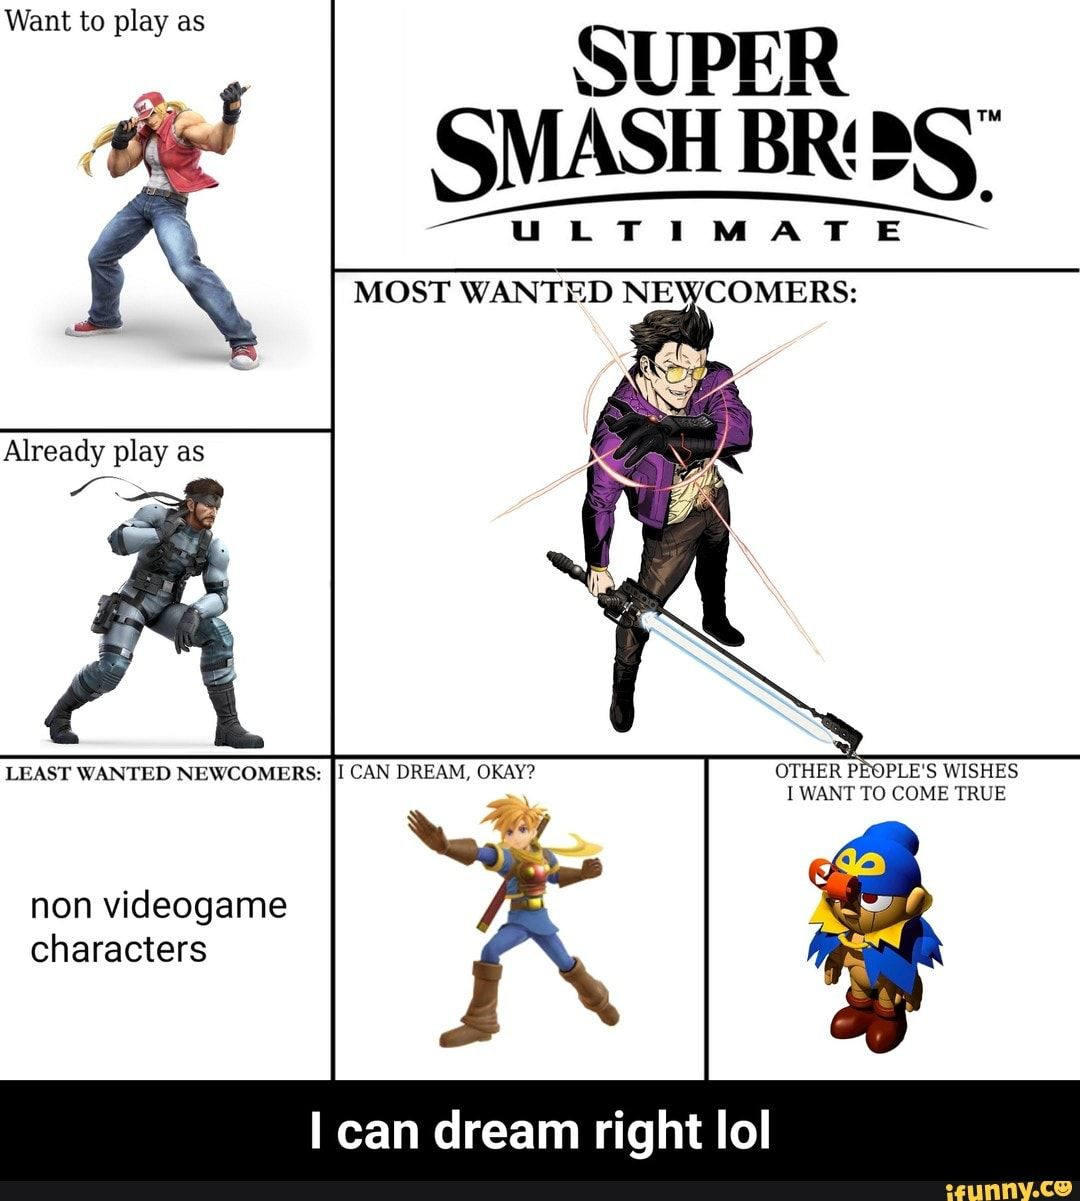 Want To Play As Super Smash Br Es Ultimate Most Wanted Ne Comers